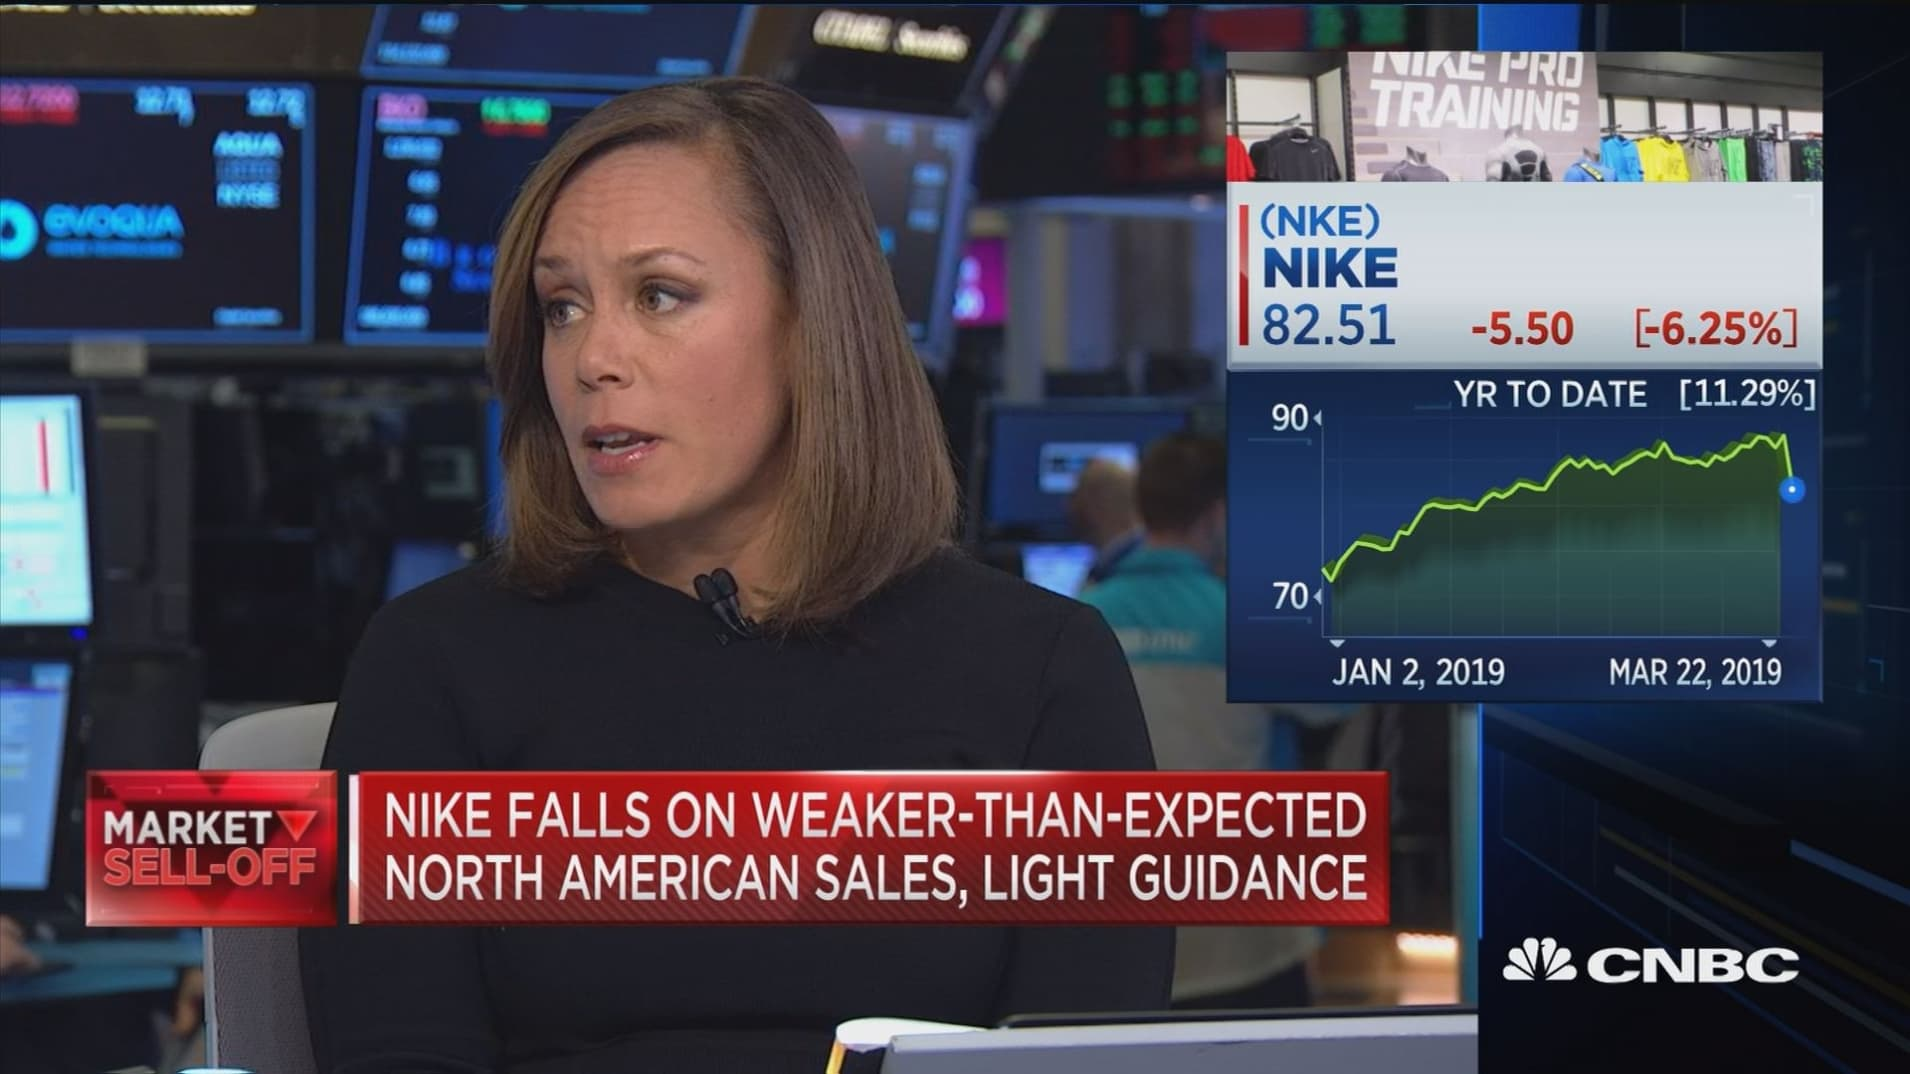 Watch this expert explain why Nike's growing faster than Adidas